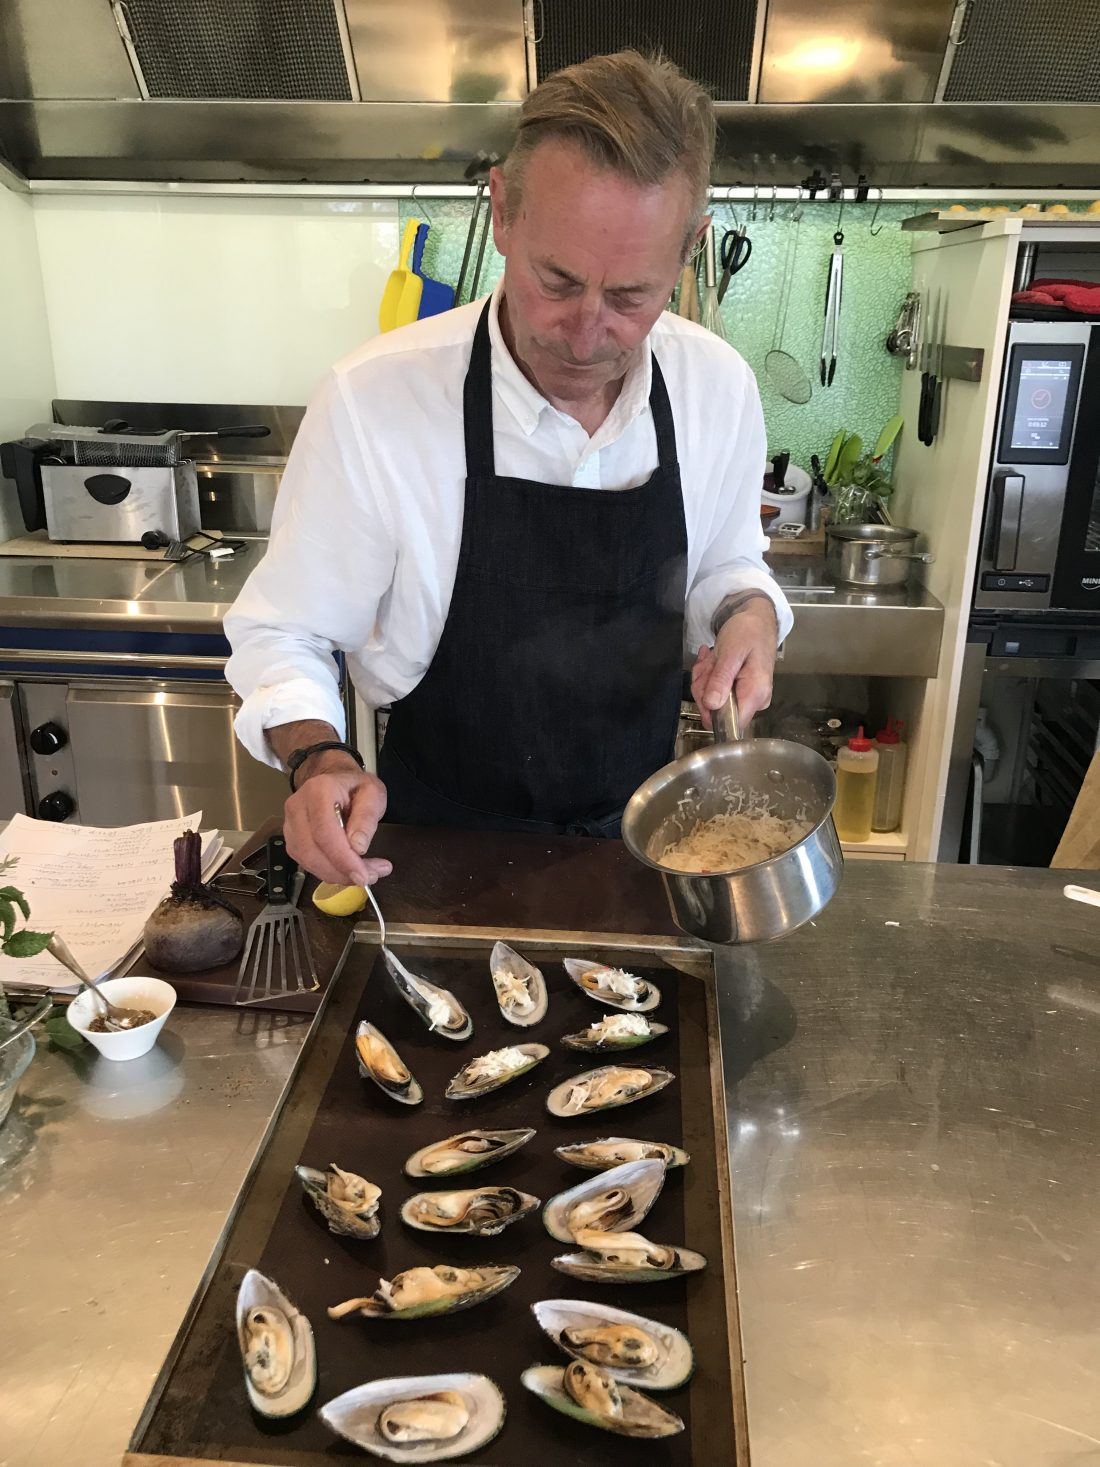 Kiwi Cooking Class: Learning in New Zealand